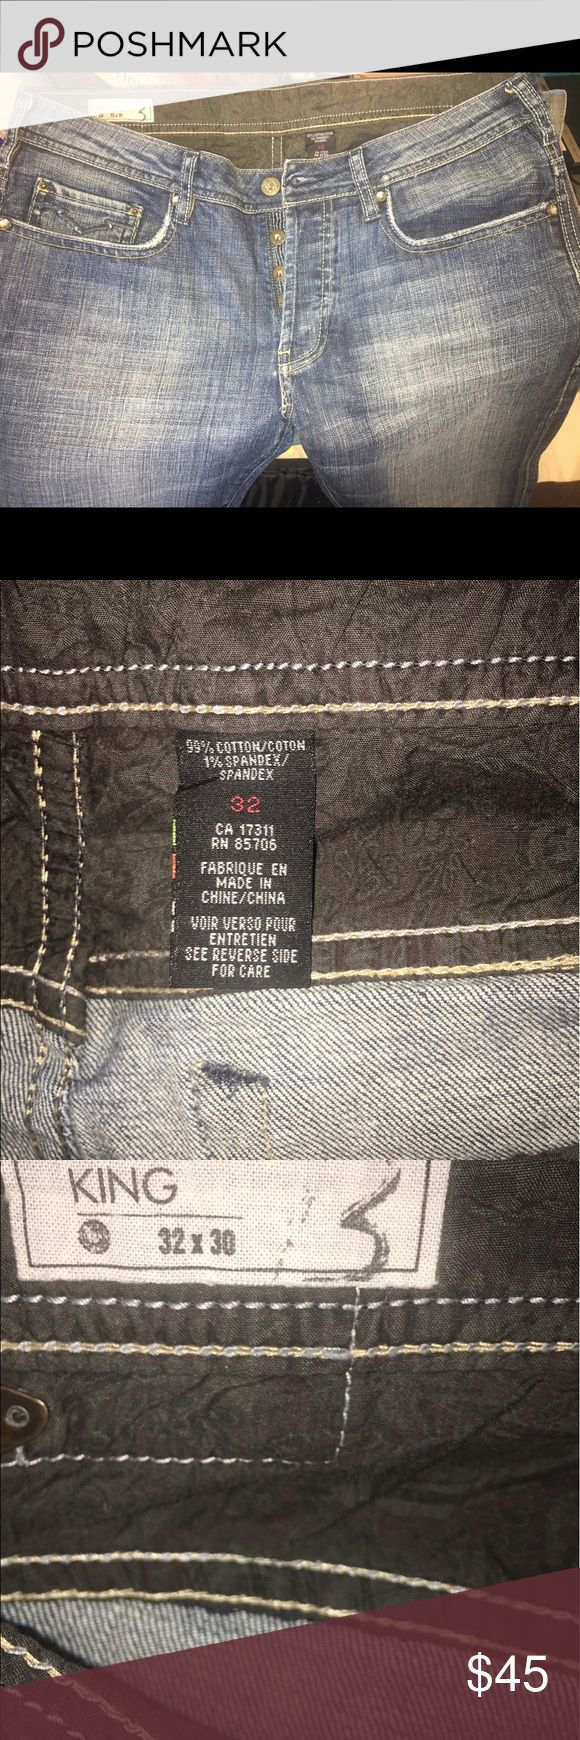 Buffalo Jeans for men size 32 X 30 Skim boot style King. Sits low on the waist. Slim through hip and thigh. Subtle bootcut leg opening. Buffalo David Bitton Jeans Slim